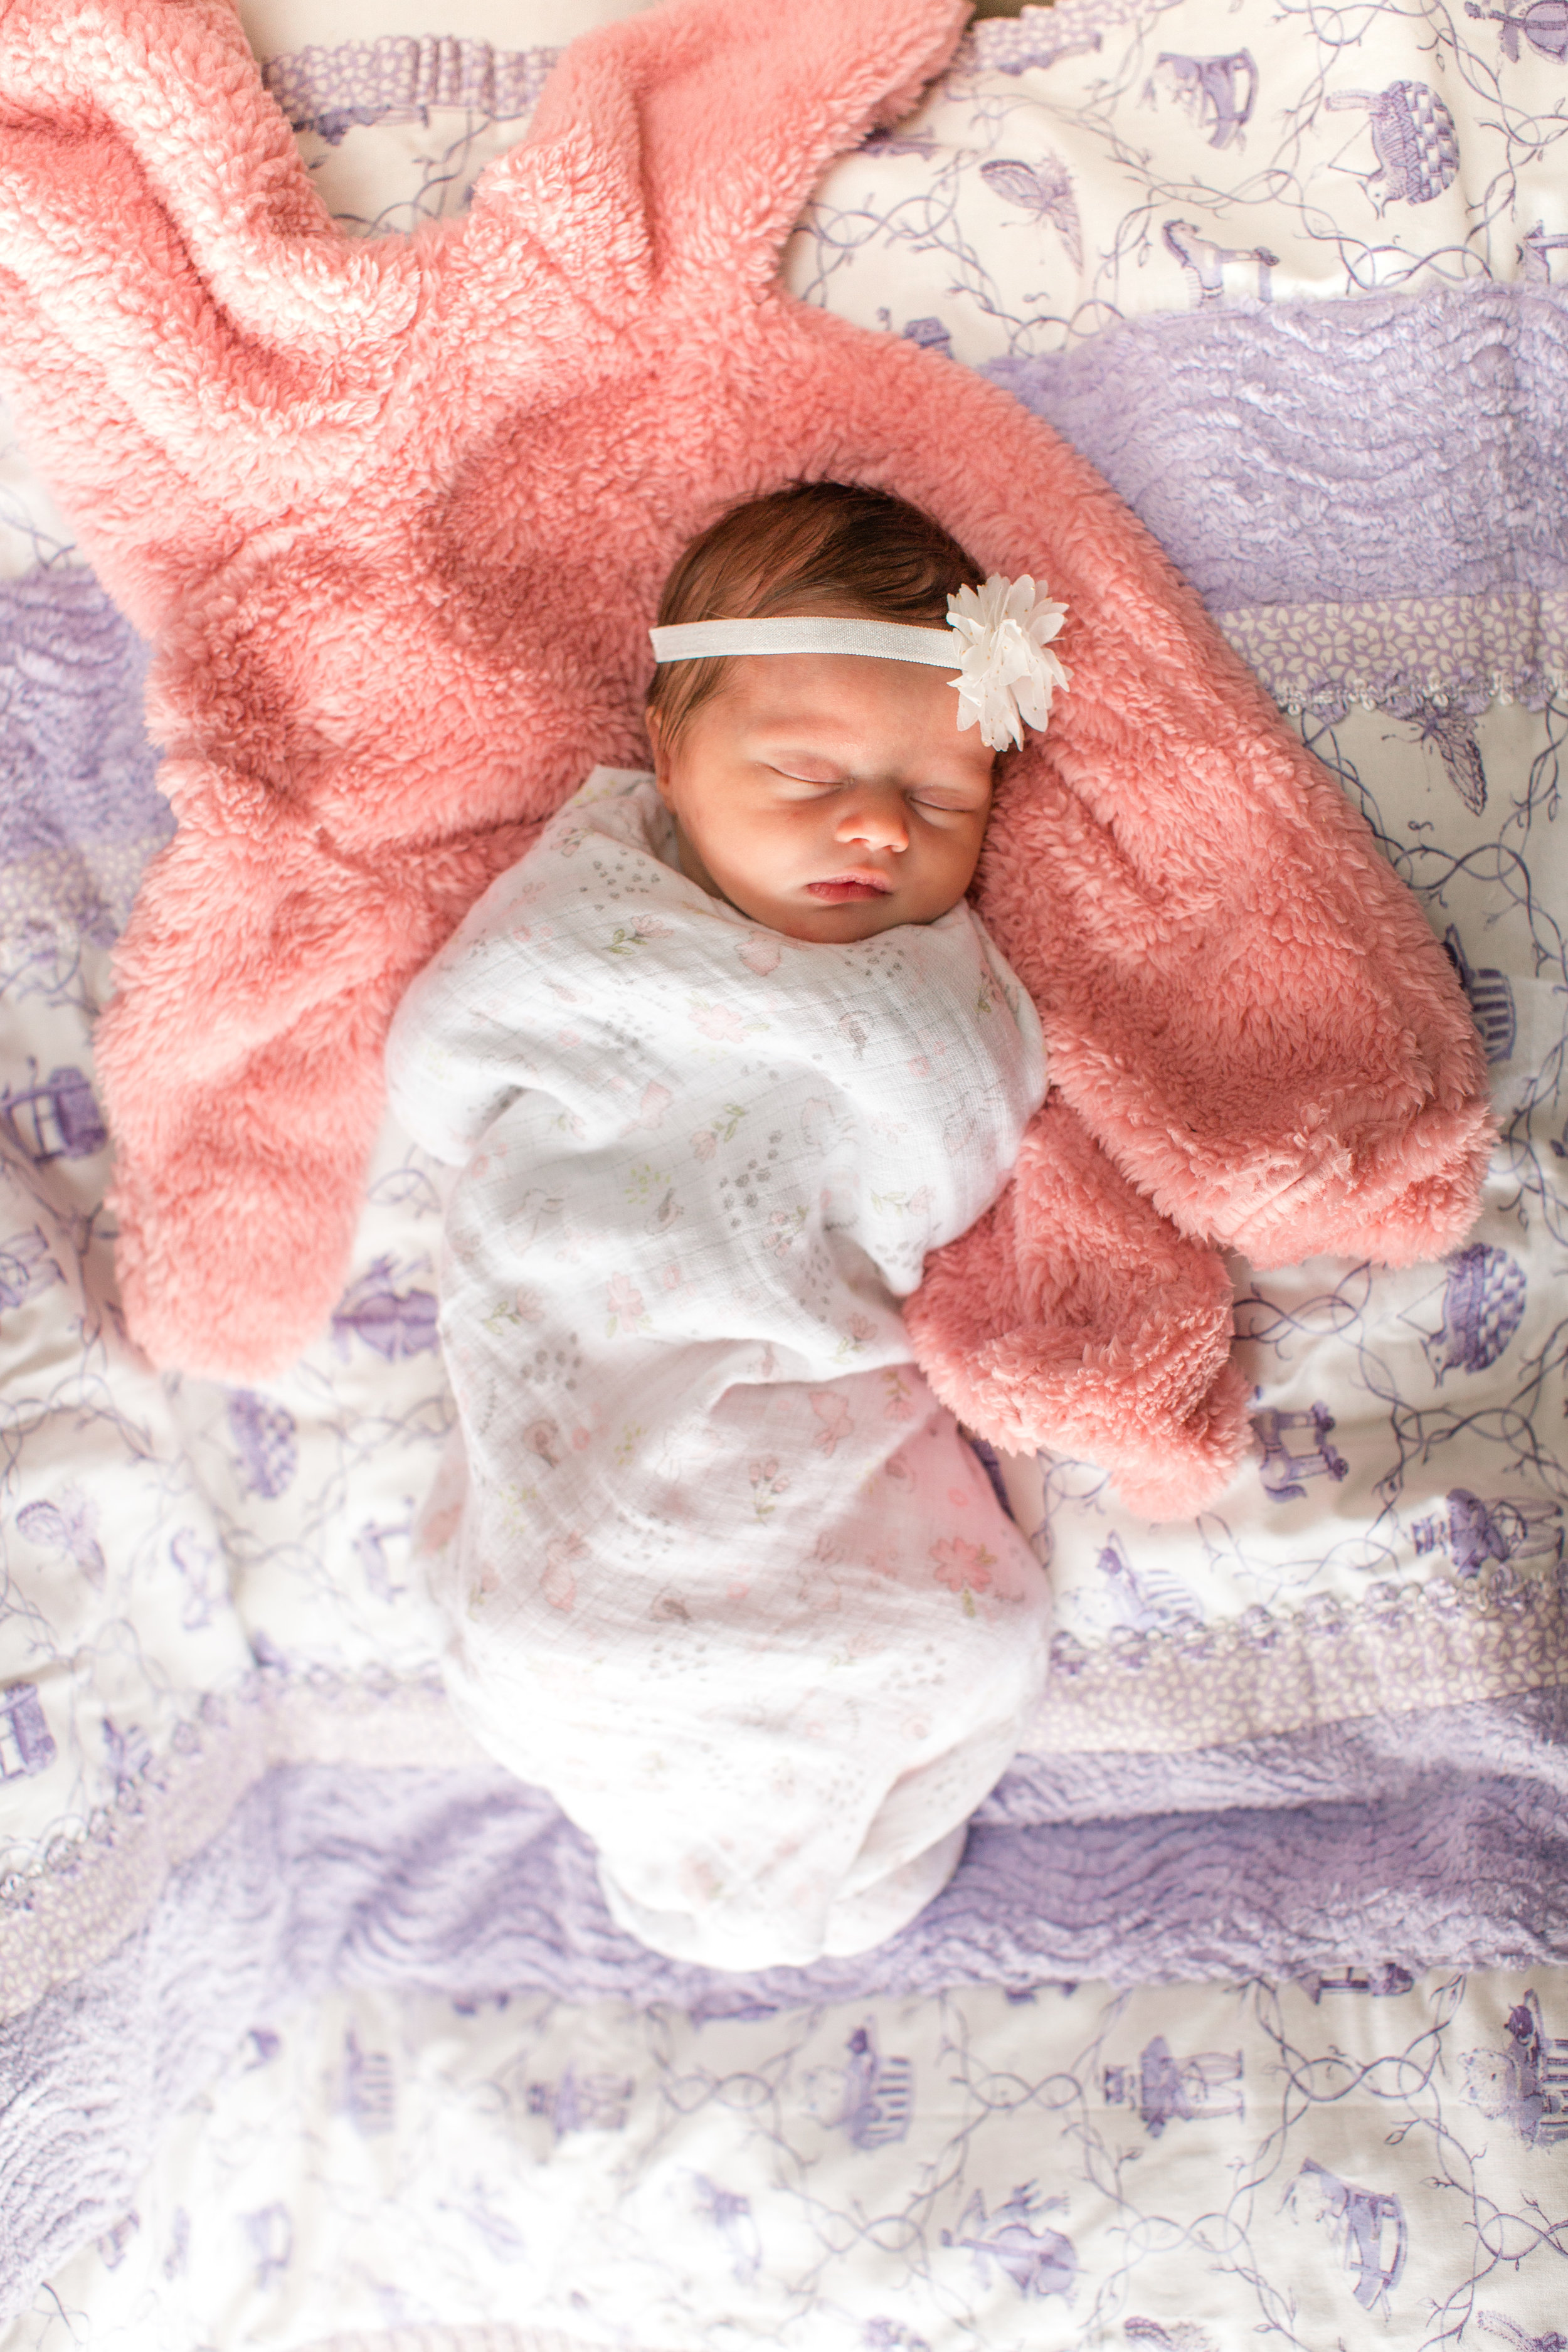 sweet newborn photo on handmade quilt and pink baby snowsuit